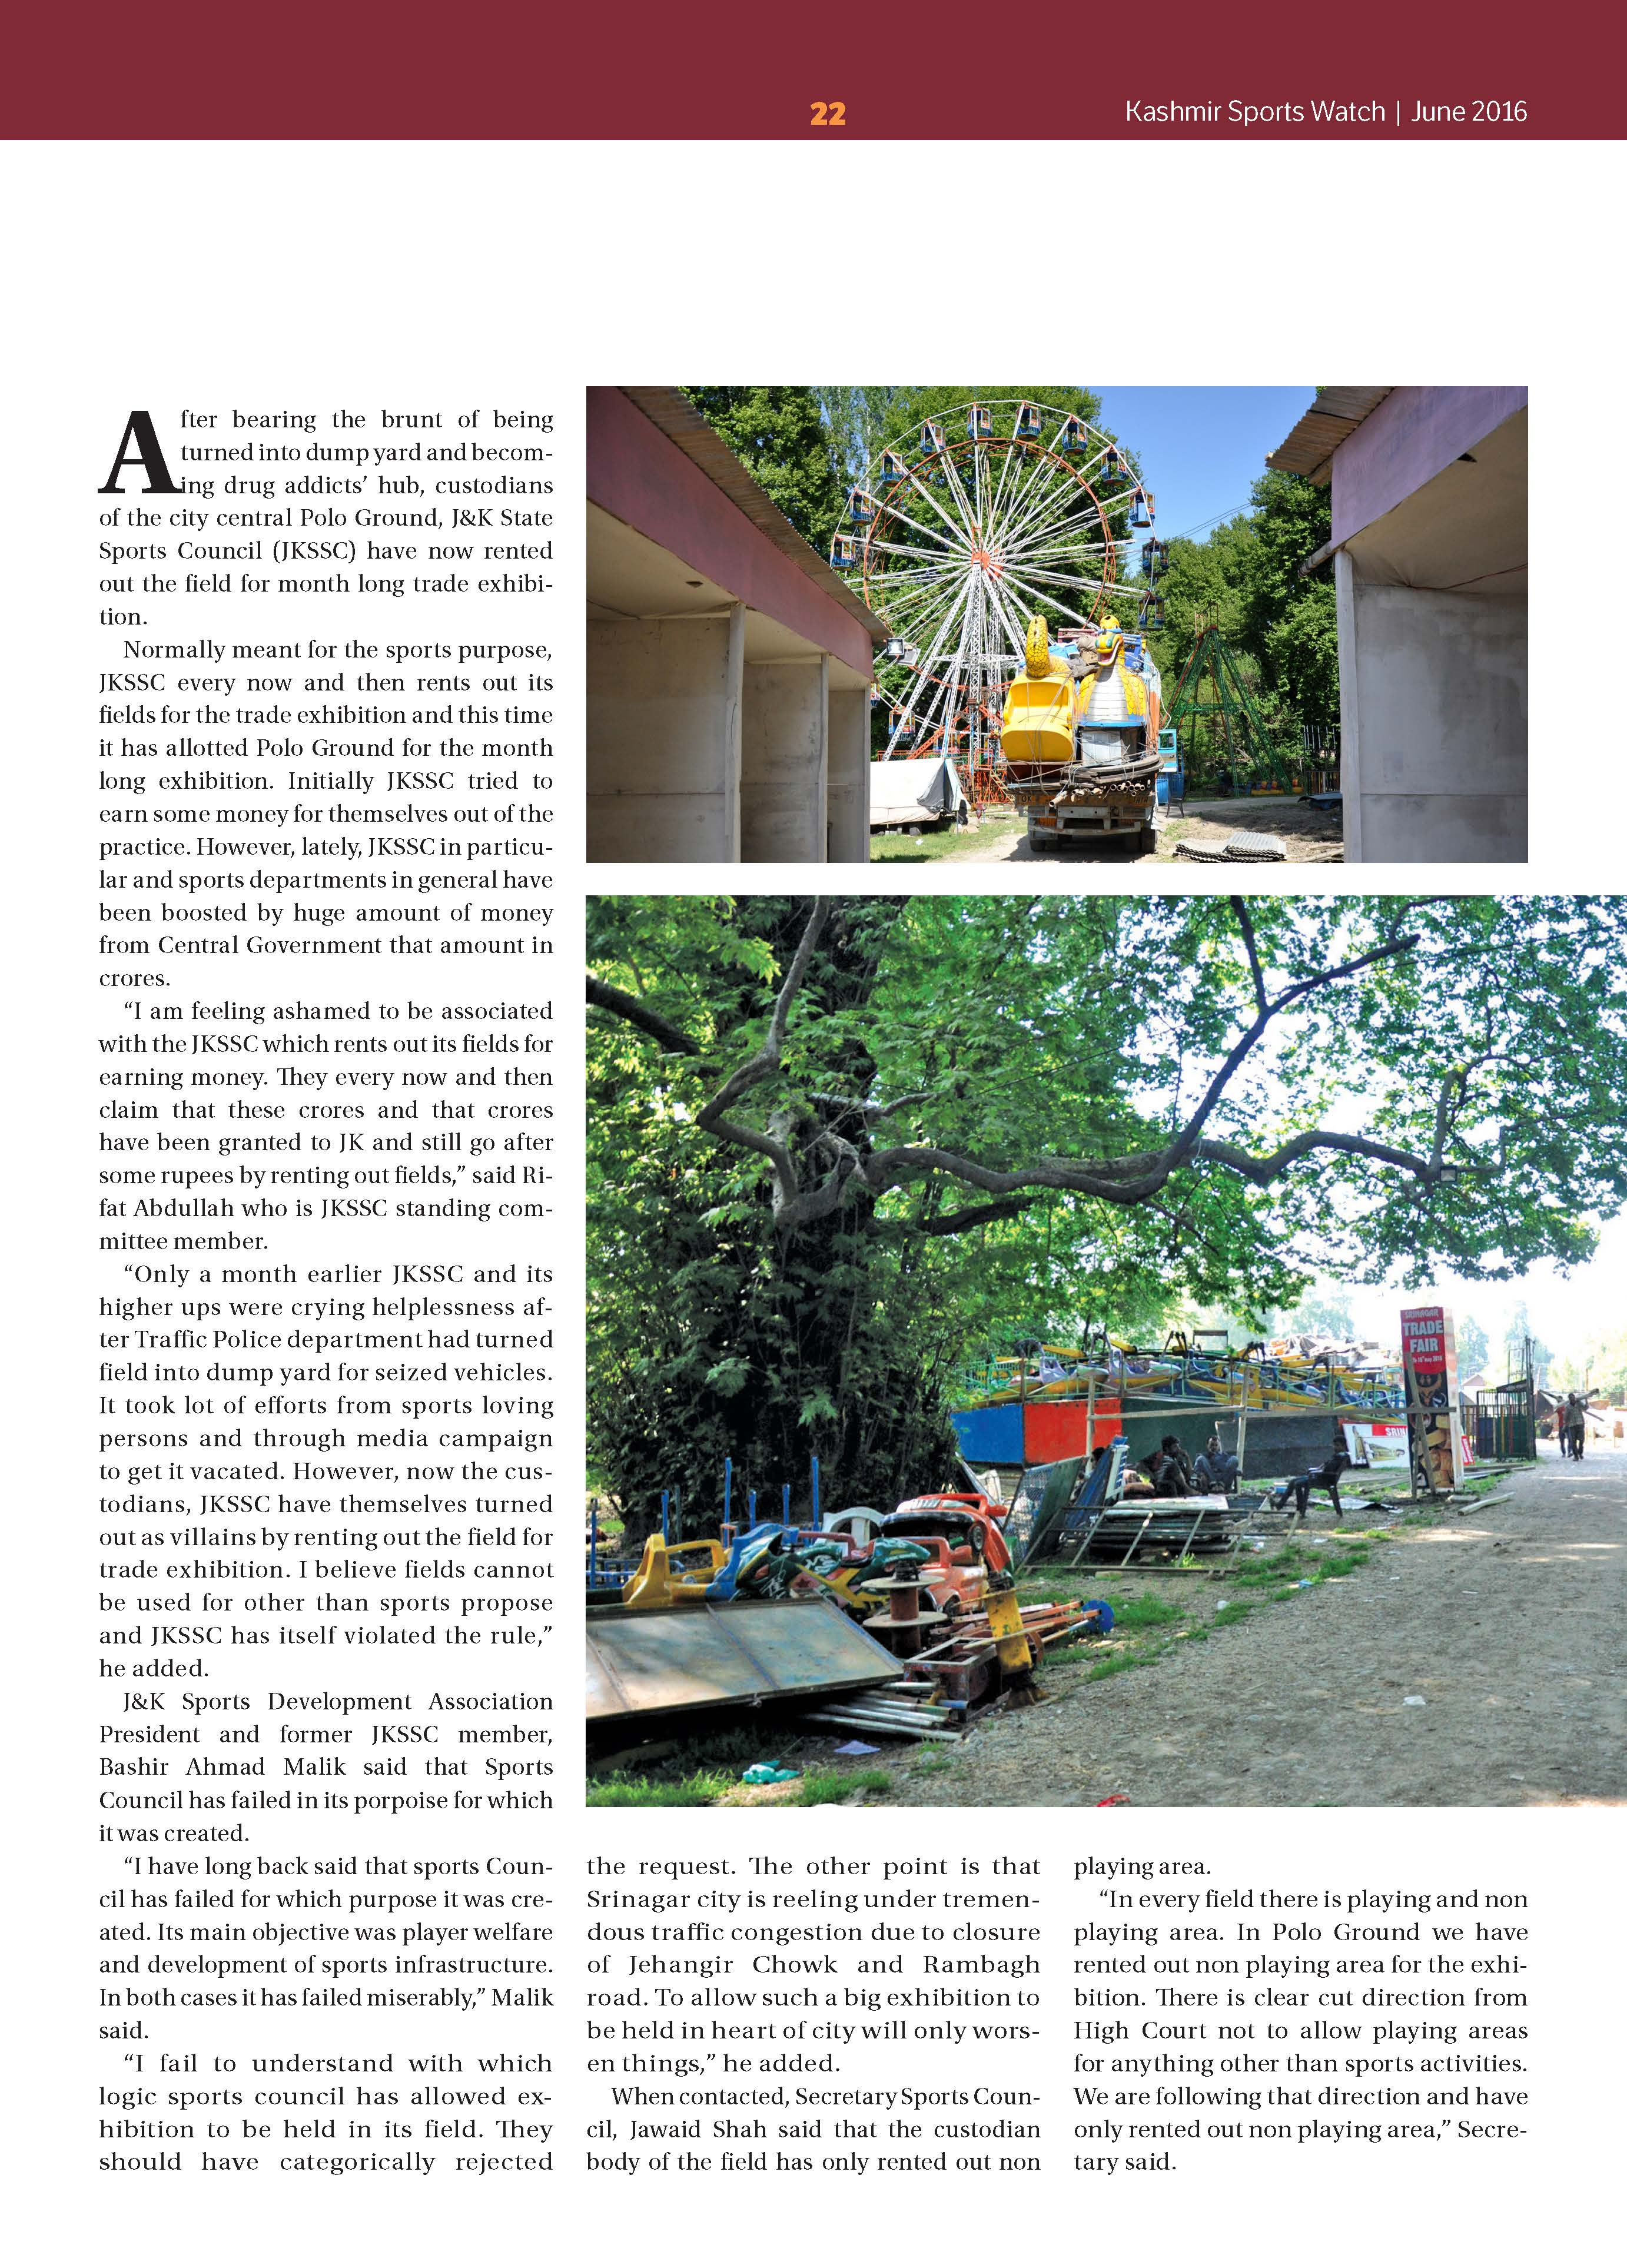 june-issue_page_22